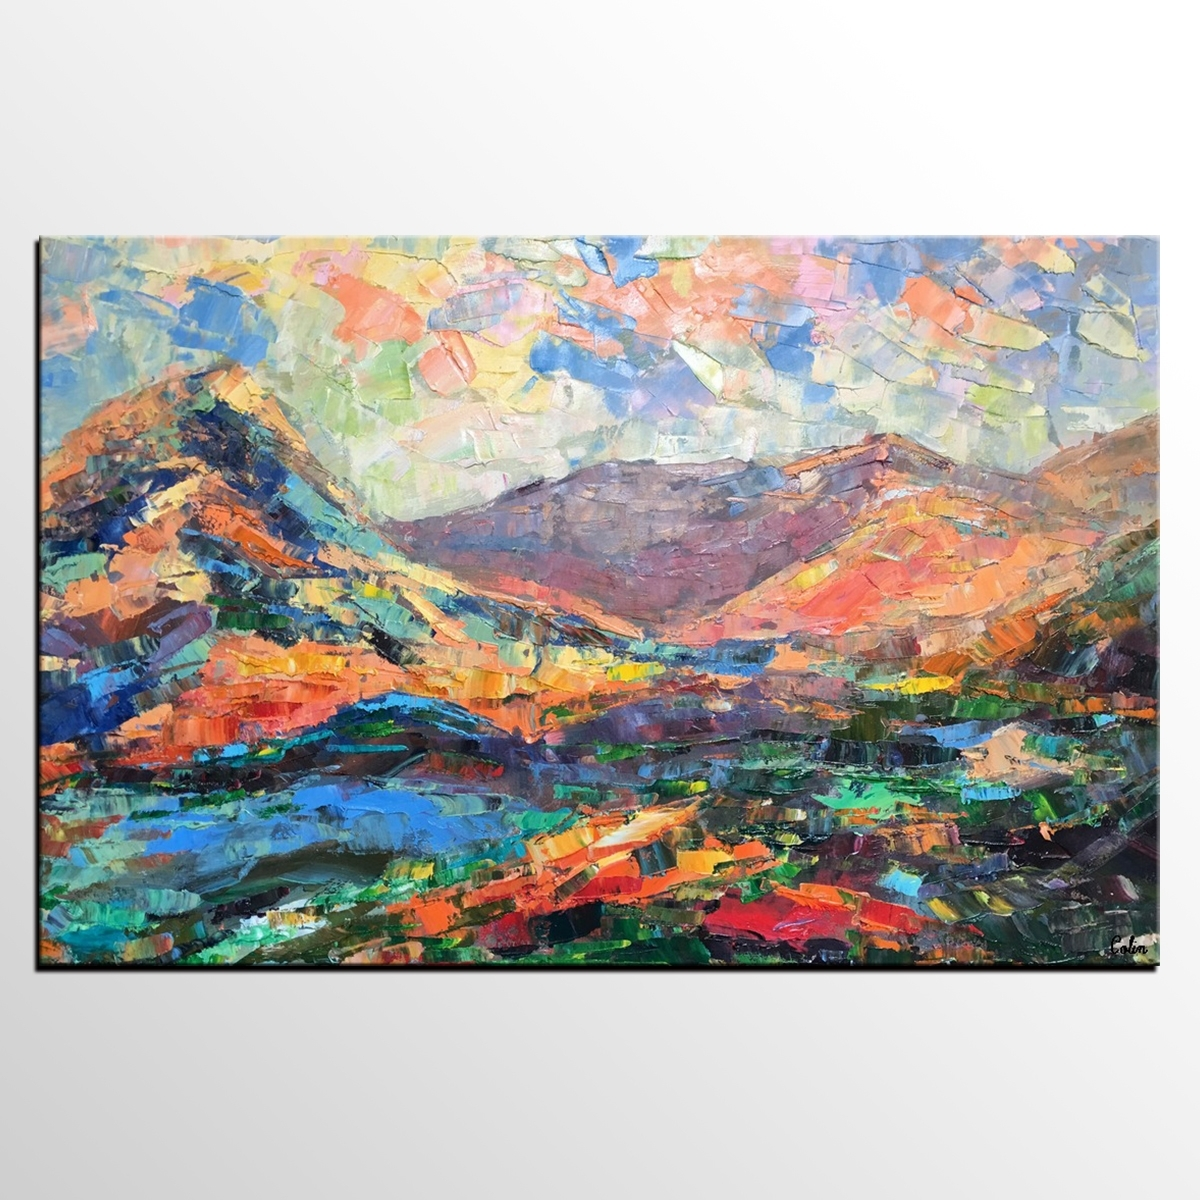 Abstract Mountain Landscape Painting, Large Wall Art, Large Art With Most Recent Abstract Landscape Wall Art (View 16 of 20)